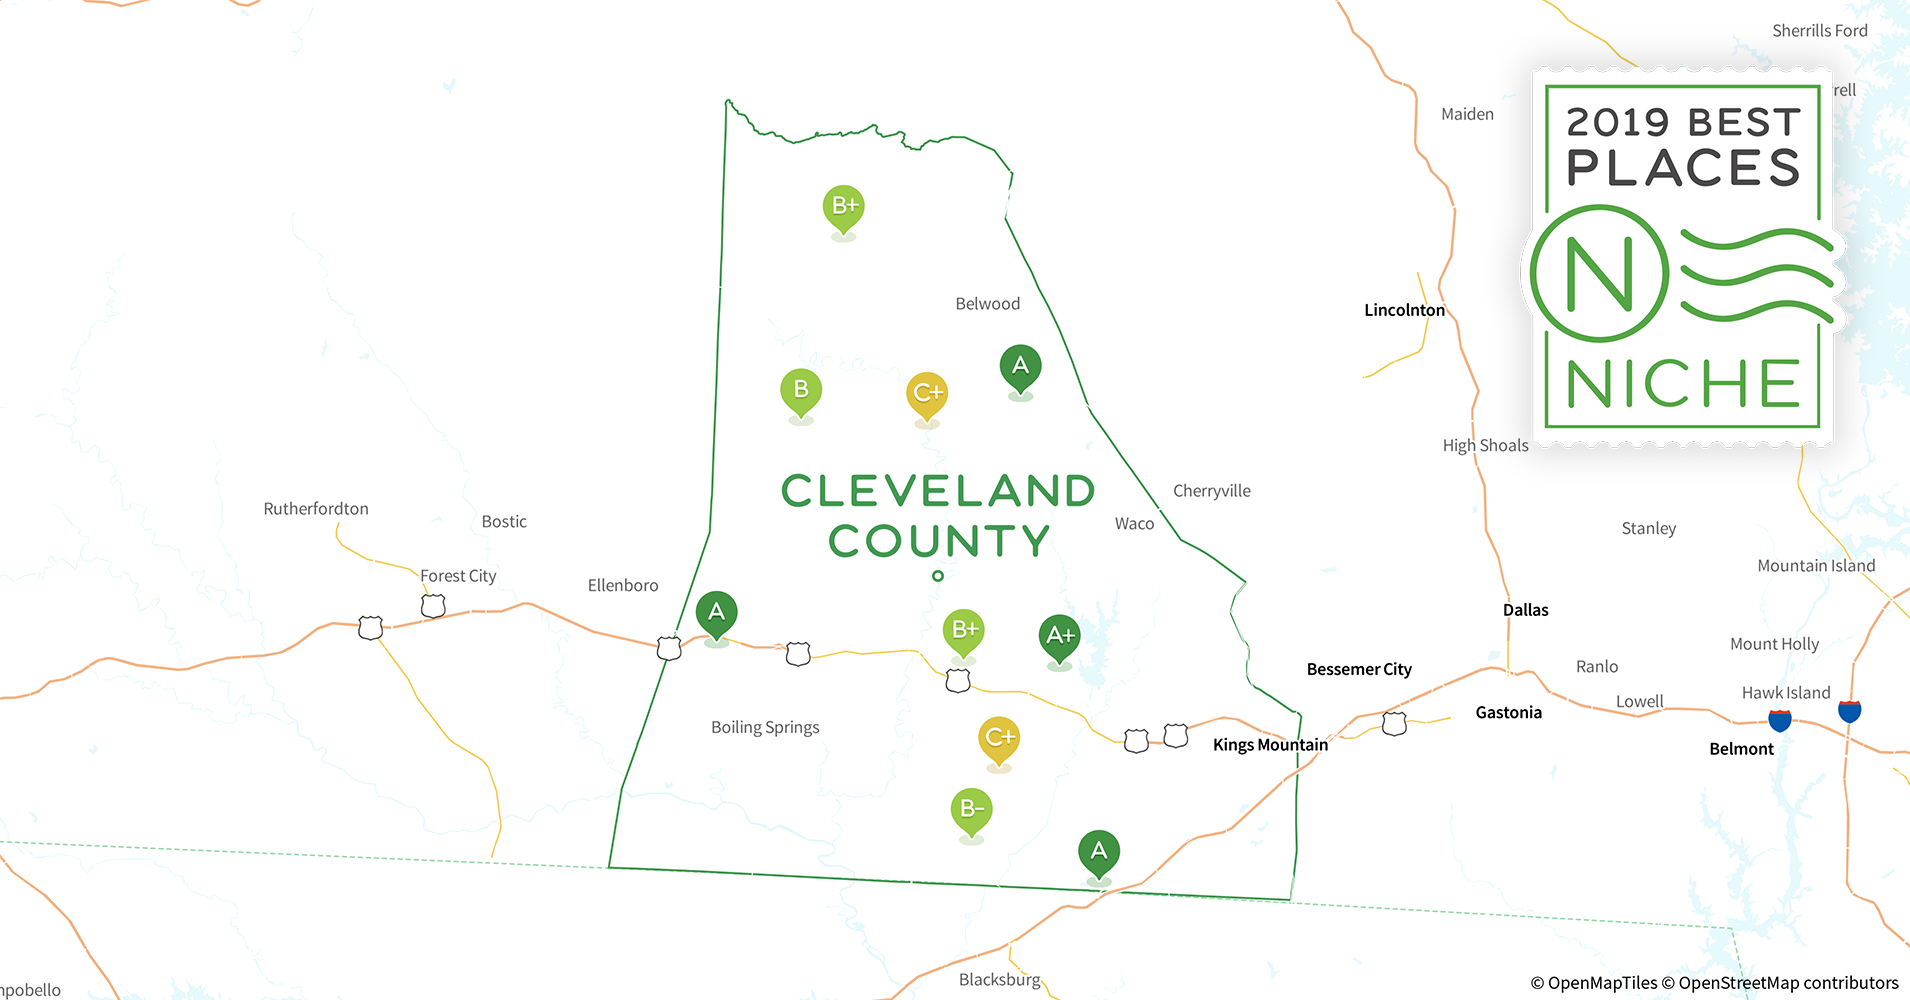 2019 Safe Places to Live in Cleveland County, NC - Niche Cleveland County Nc Map on chester county nc map, united states nc map, lee county nc map, ranlo nc map, burke county, lumberton nc map, kings mountain, lincoln county, roanoke county nc map, kings mountain nc map, real estate charlotte nc map, martin county, bowman county north dakota map, lawndale nc map, rowan county, warren nc map, large nc county map, cabarrus county, roanoke rapids, gaston county, yadkin river nc map, union county, iredell north carolina zip code map, henderson county, north carolina and virginia county map, buncombe county, cherokee county, burke co nc map, wake county nc map, rutherford county, wrightsville nc map, washington county, sampson county nc map, polk county, clay county, columbia county nc map,